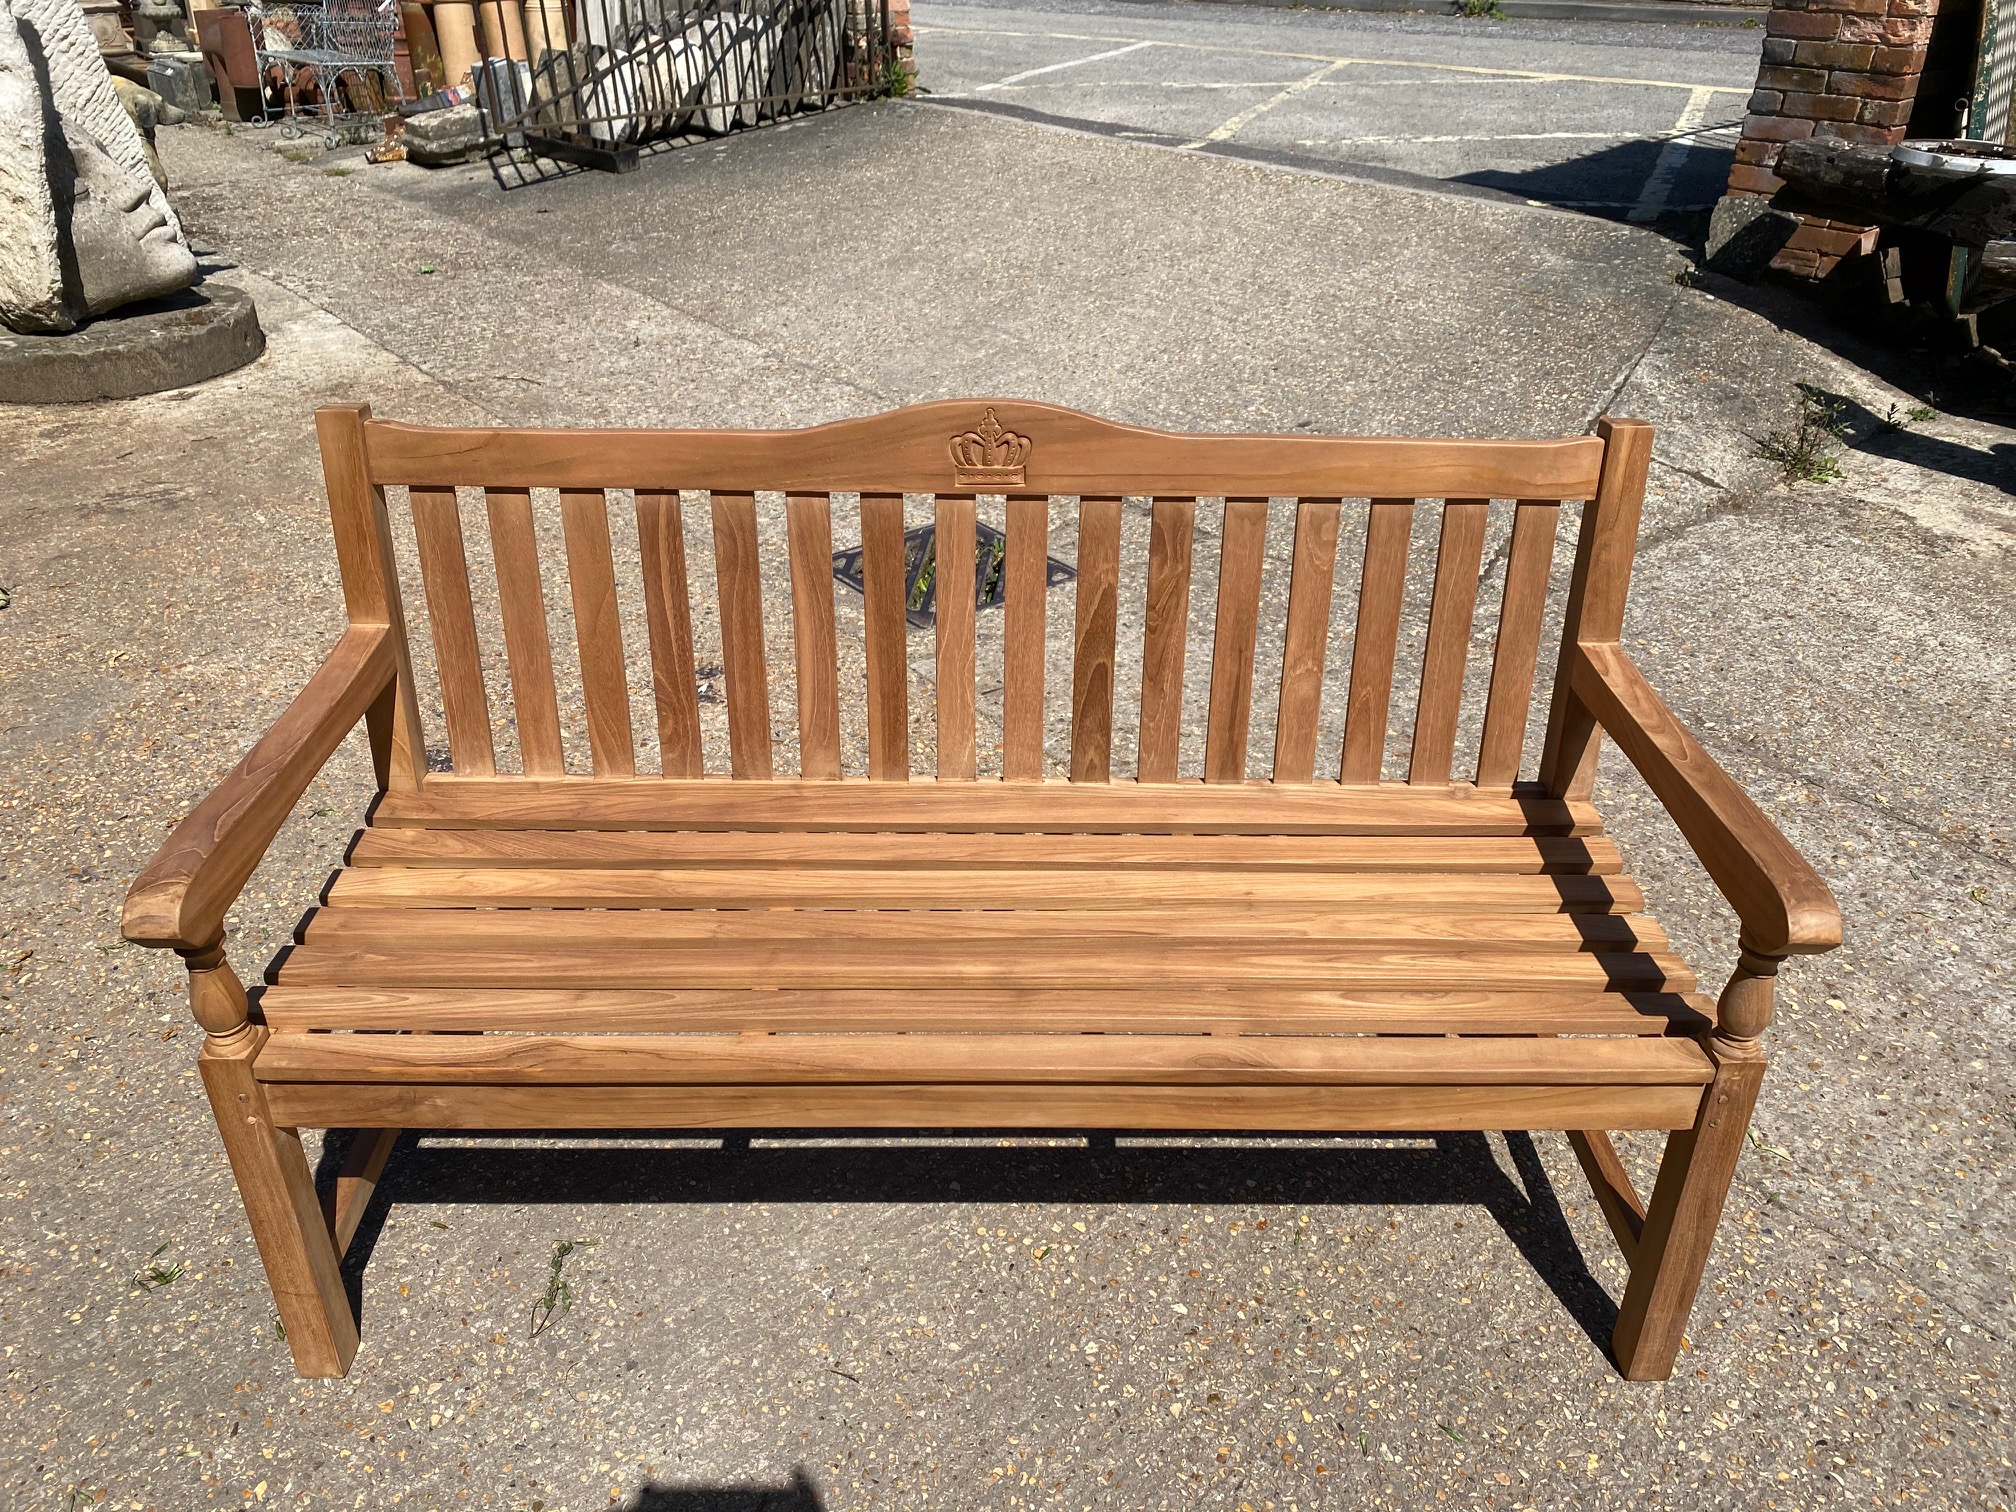 <p>Solid Teak Bench</p><p>150cm Wide X 55cm Deep X 93cm High</p>